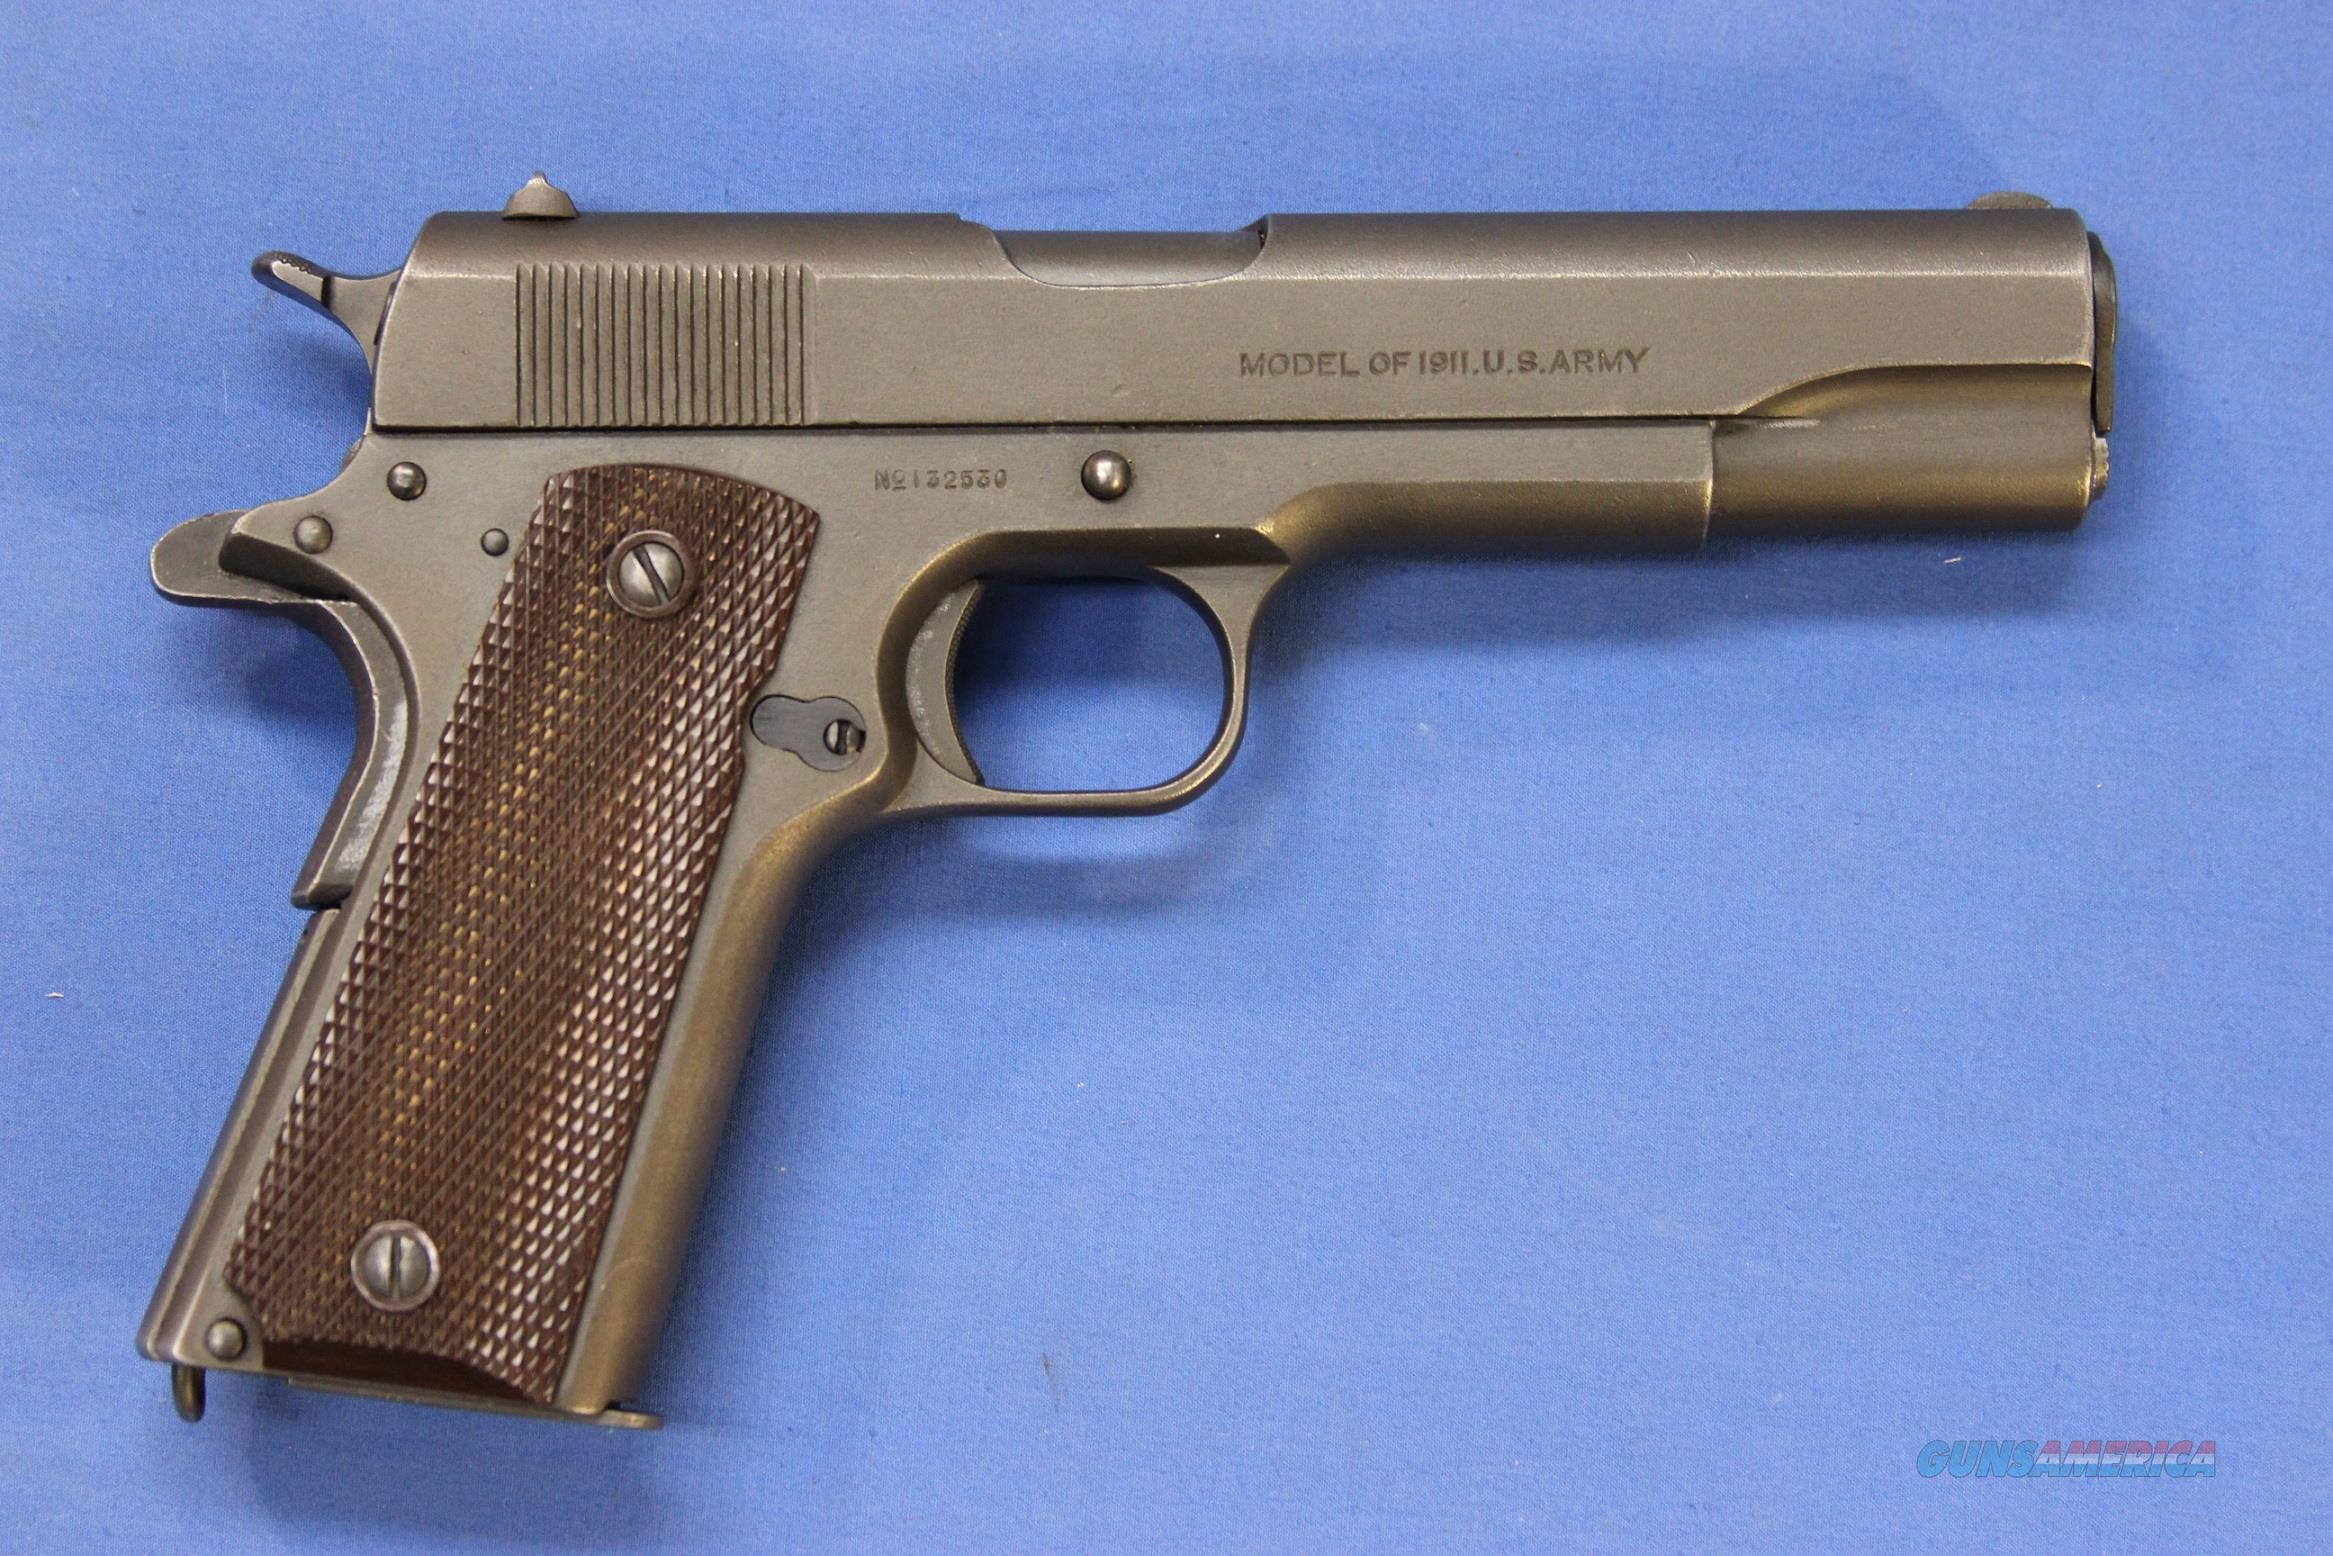 COLT US MILITARY .45 ACP MODEL OF 1911 US ARMY  Guns > Pistols > Colt Automatic Pistols (1911 & Var)